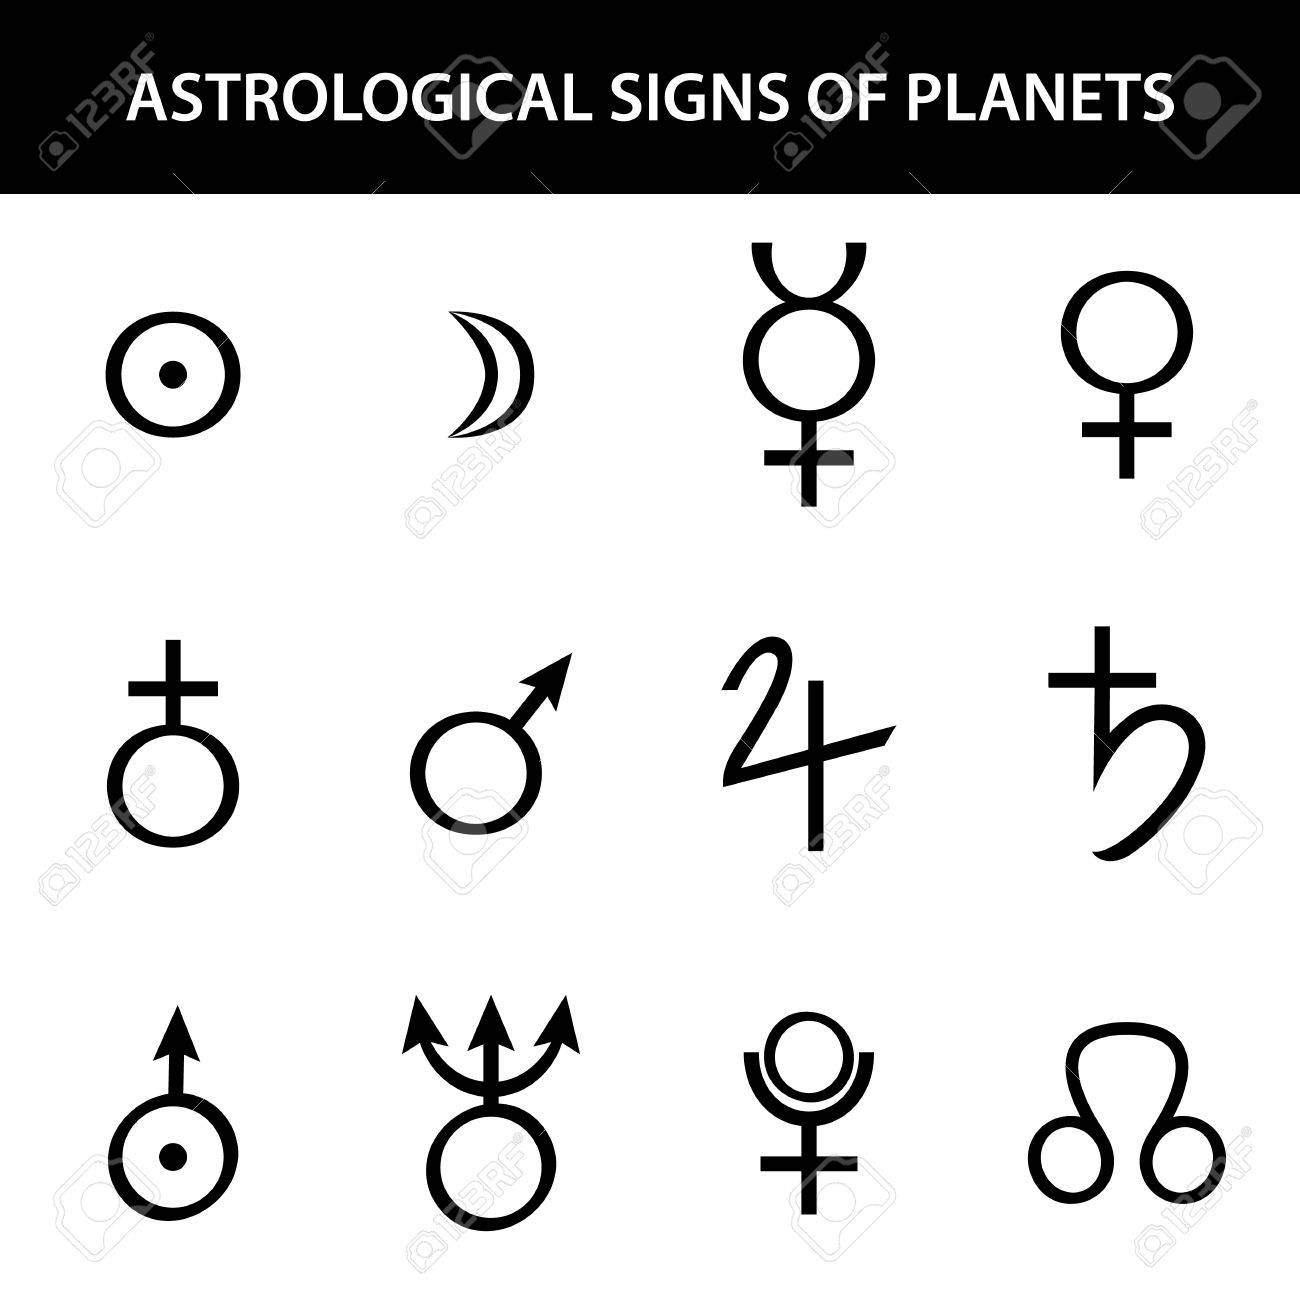 Astrology signs of planets  Vector illustration